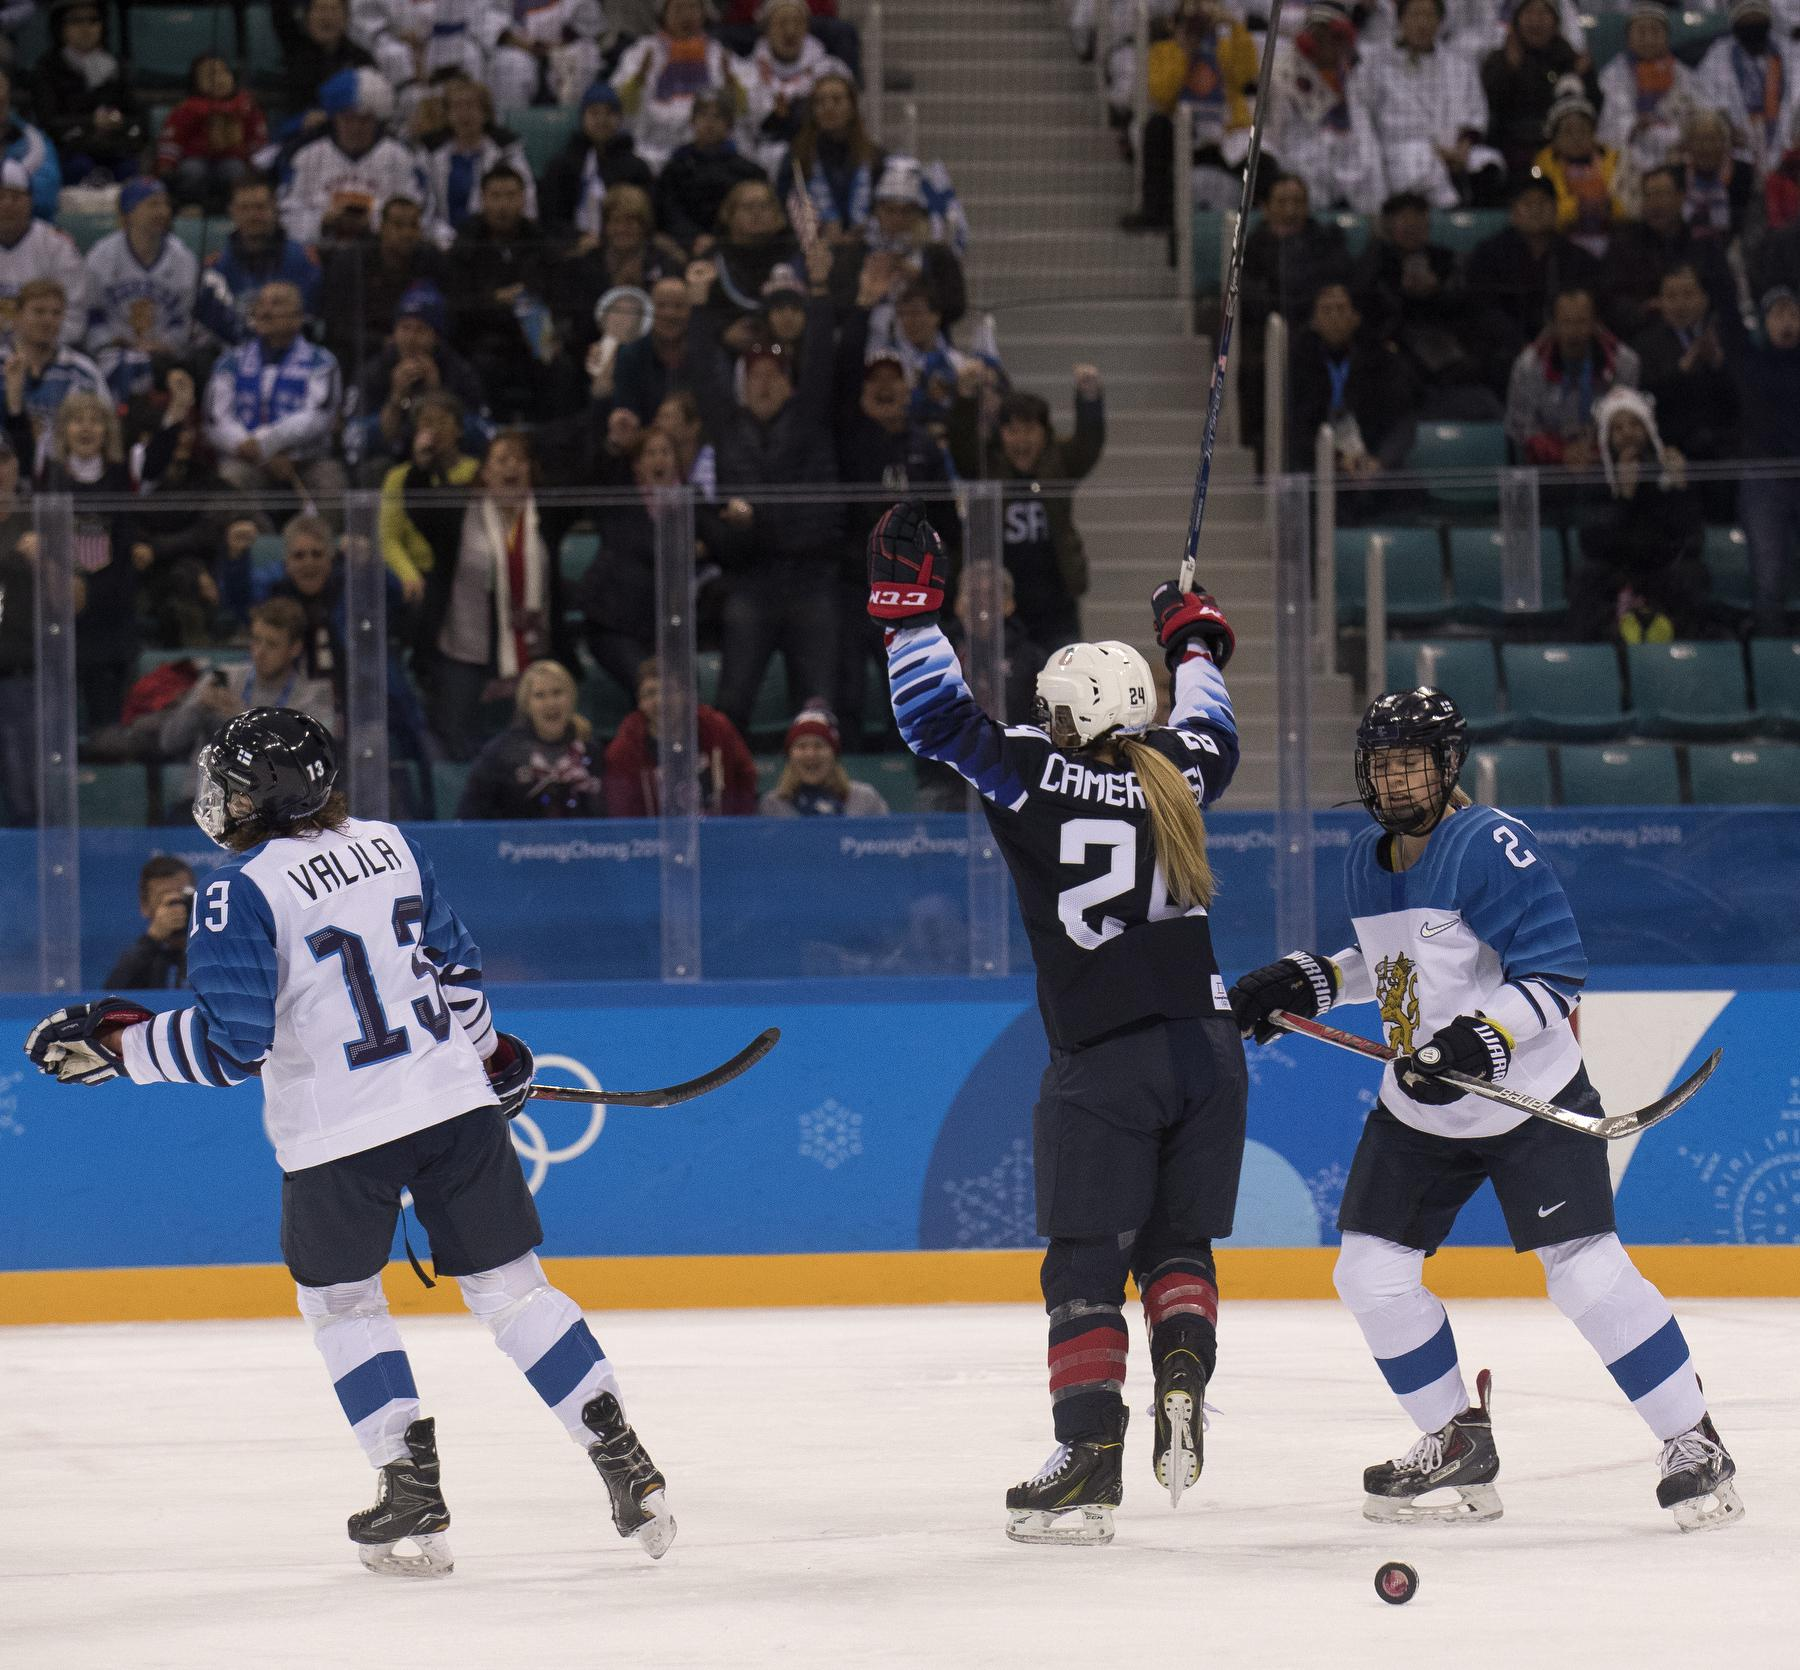 Olympics: Future of unified Korean ice hockey team not a given - coach